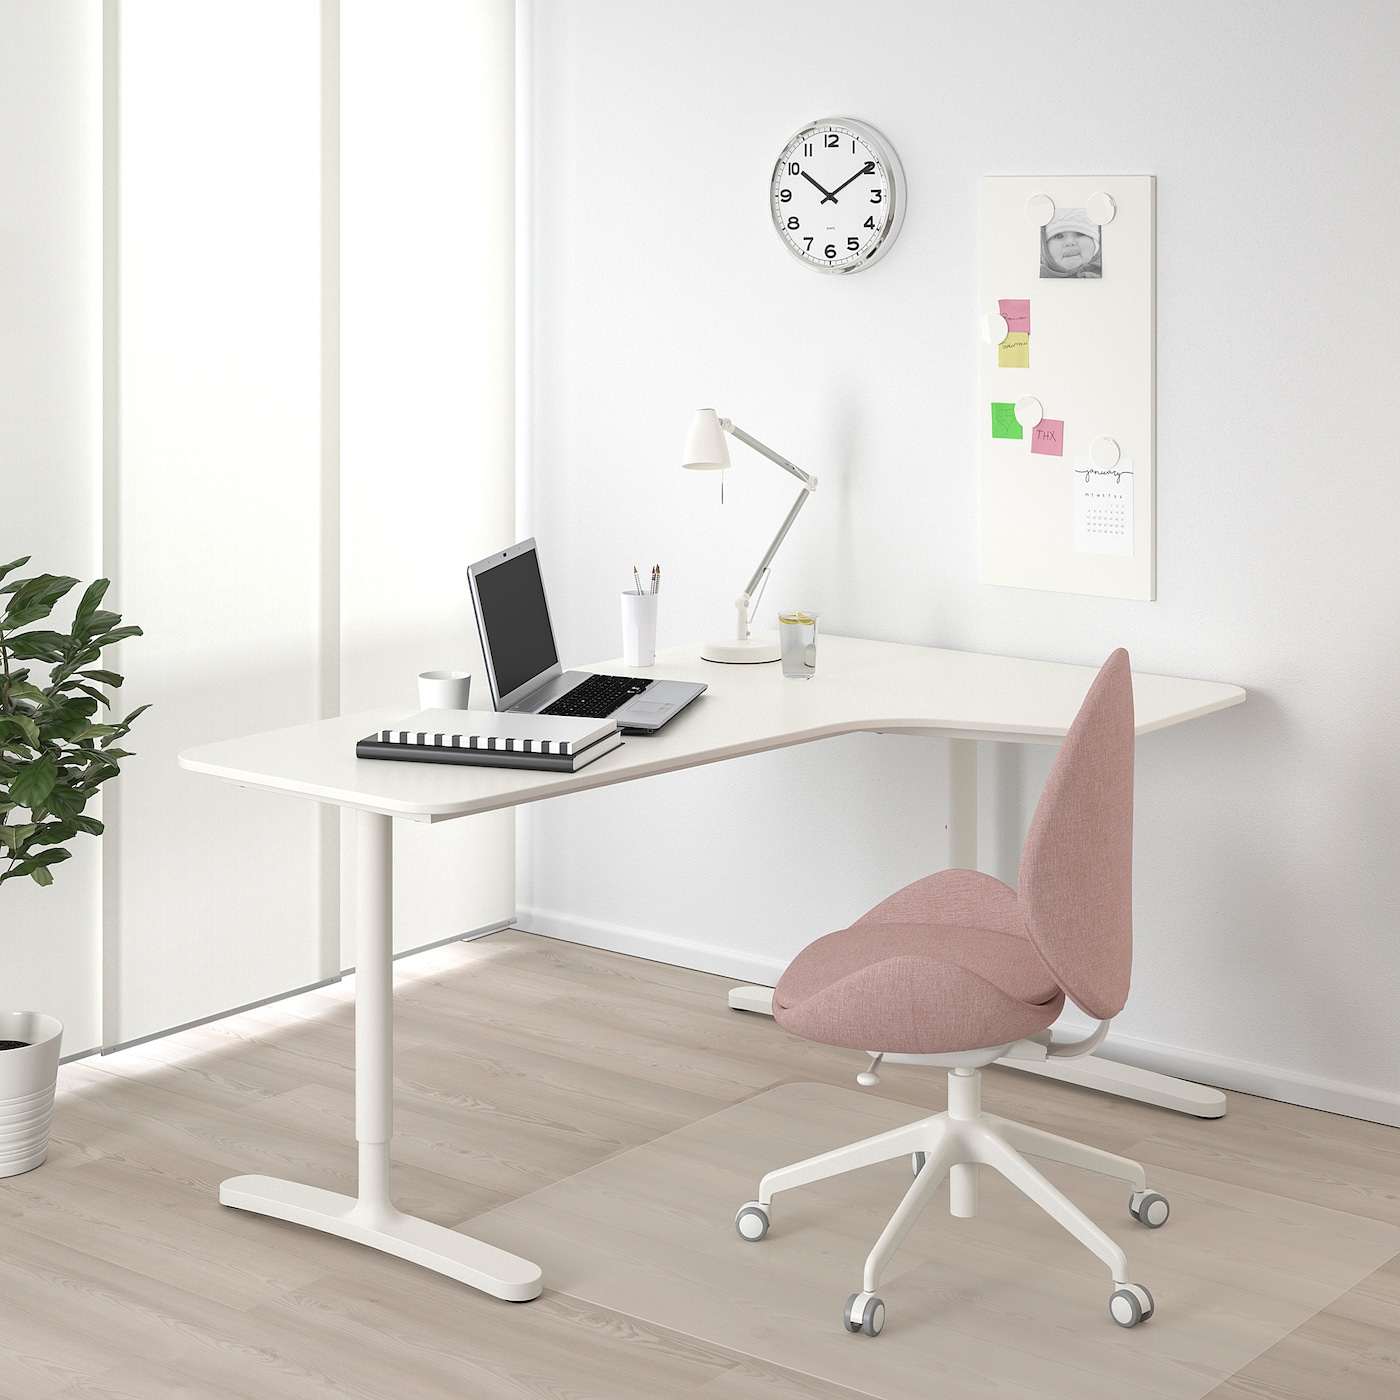 BEKANT Corner desk-right - white 466x466 466/46 ""